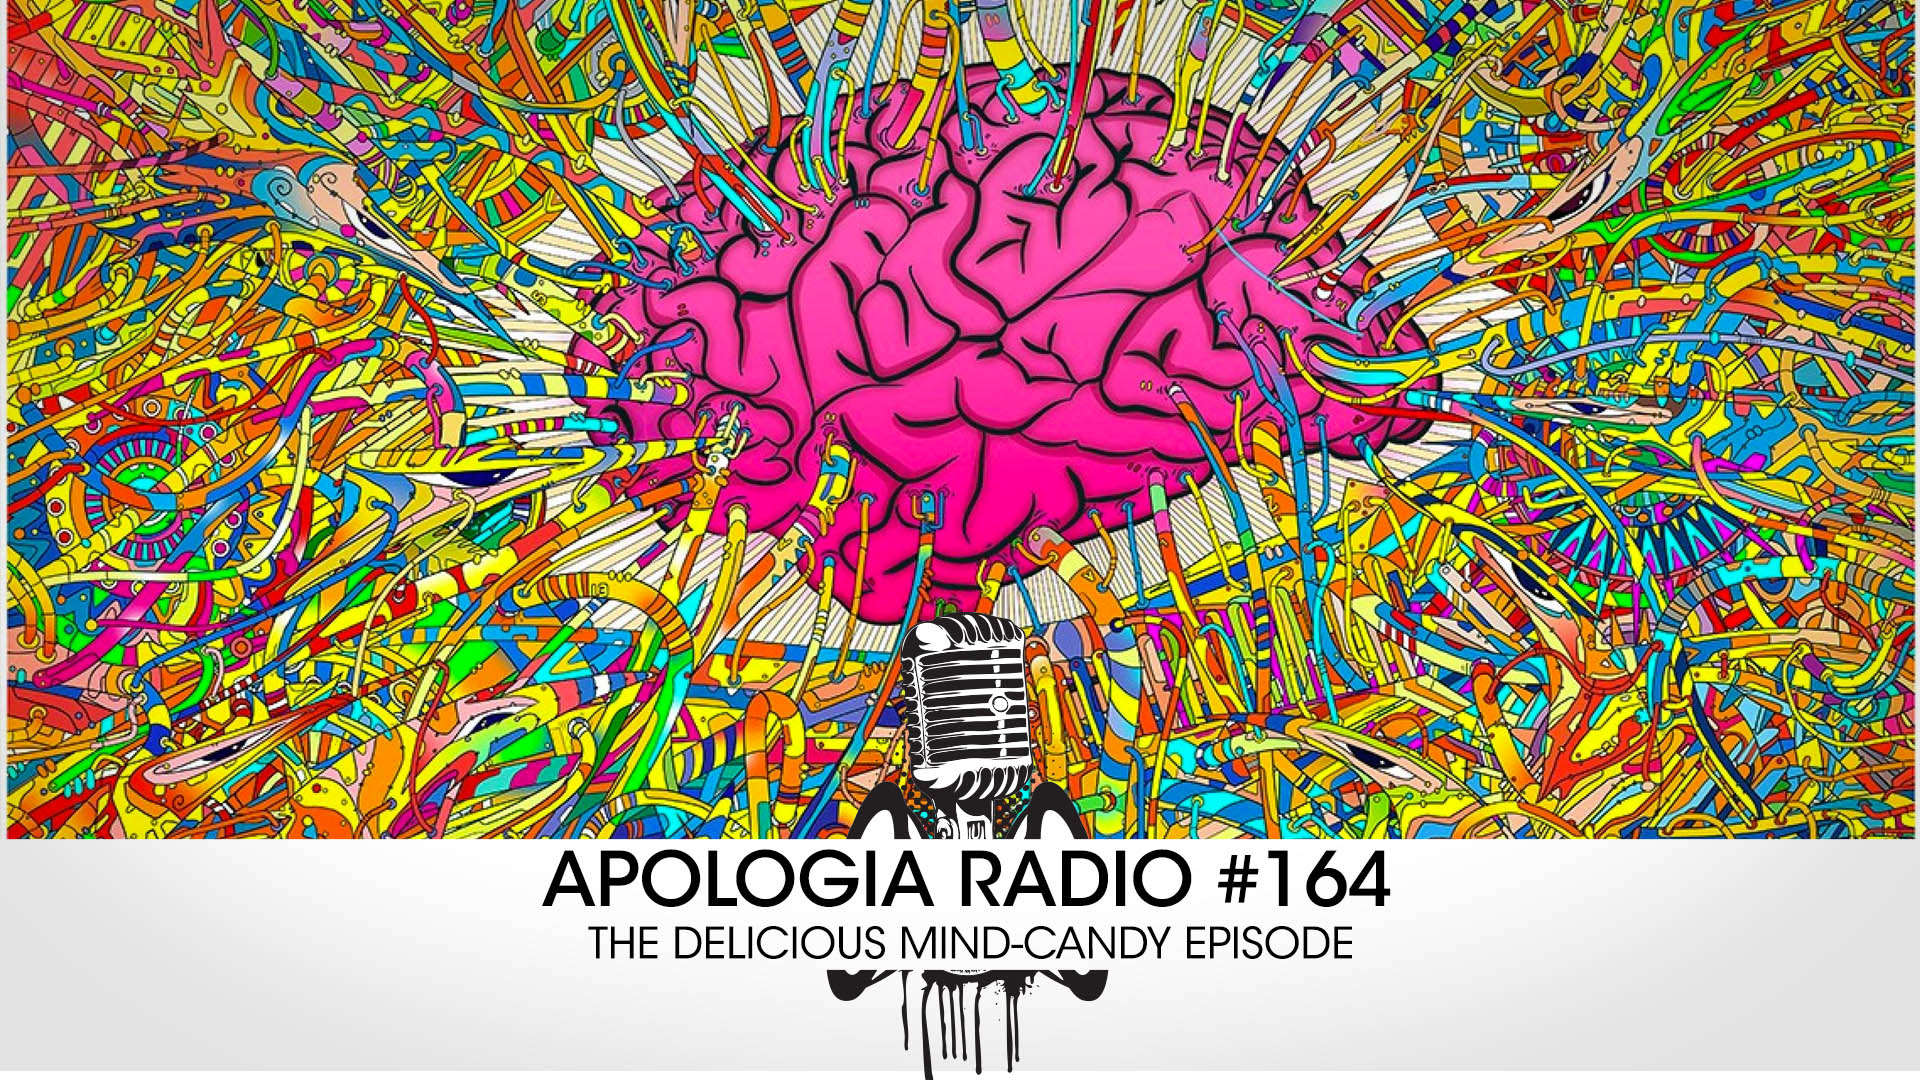 Apologia-radio-164-jol-mcdurmon-rusty-thomas